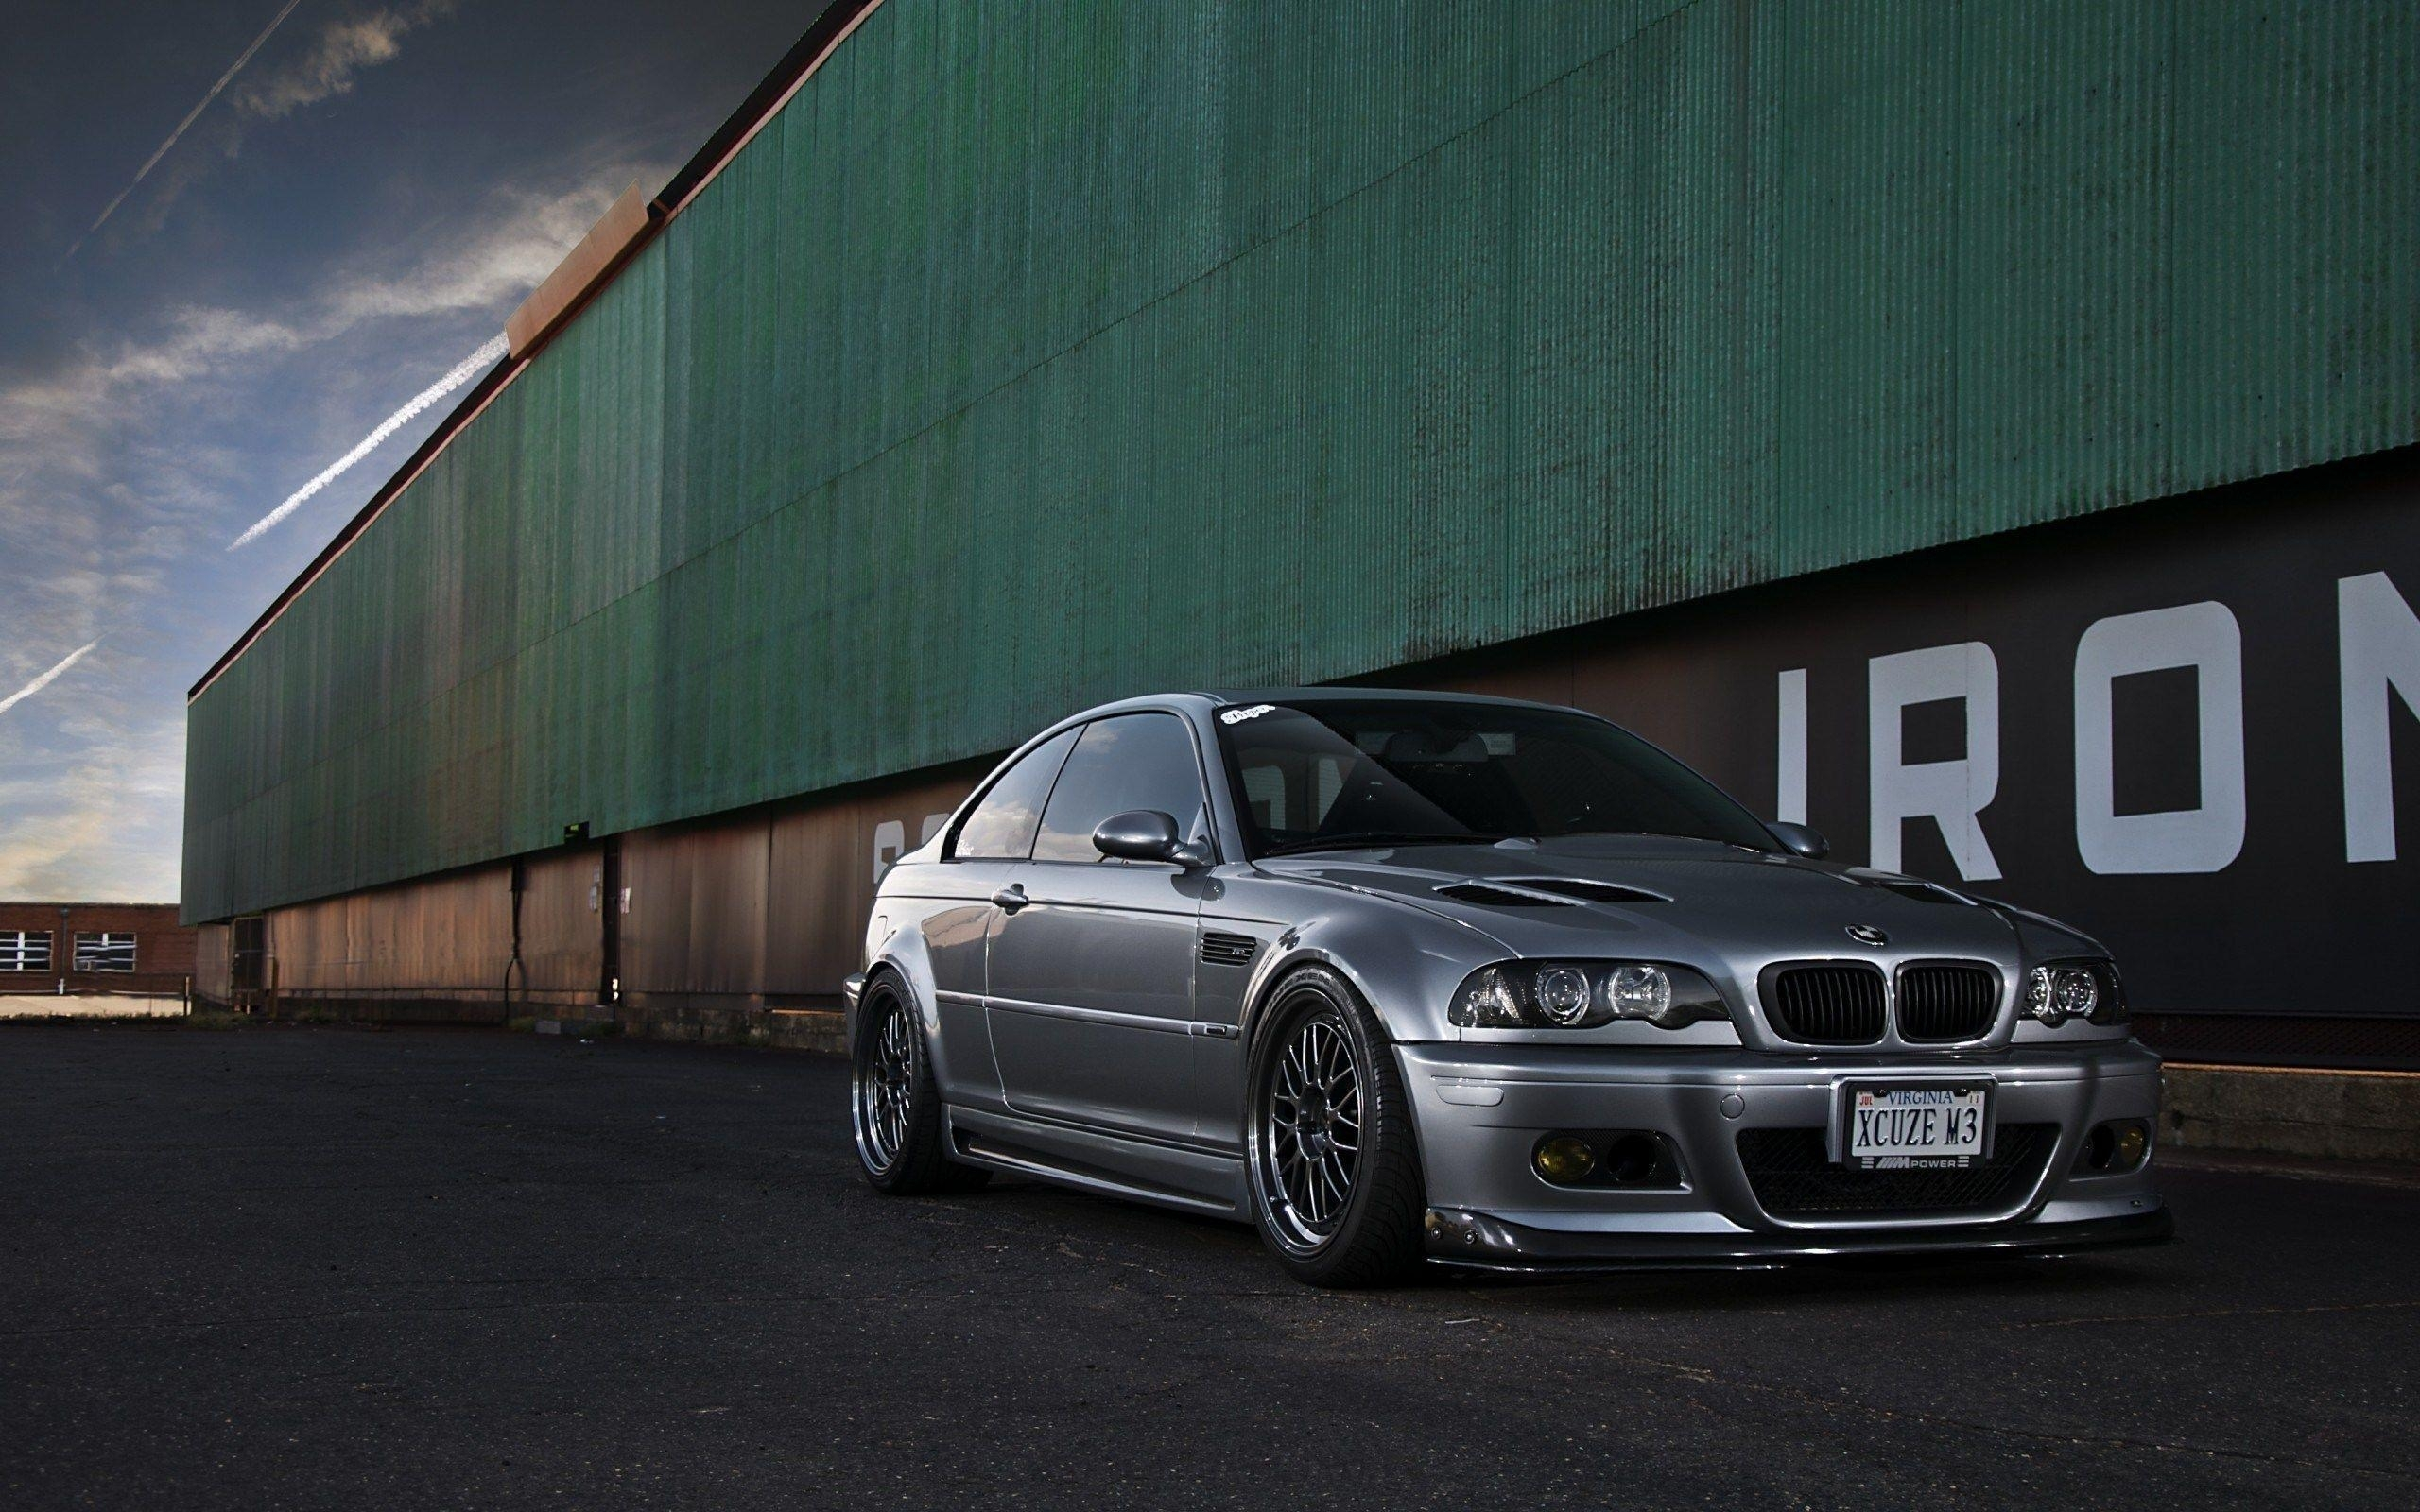 bmw e46 m3 wallpapers - wallpaper cave